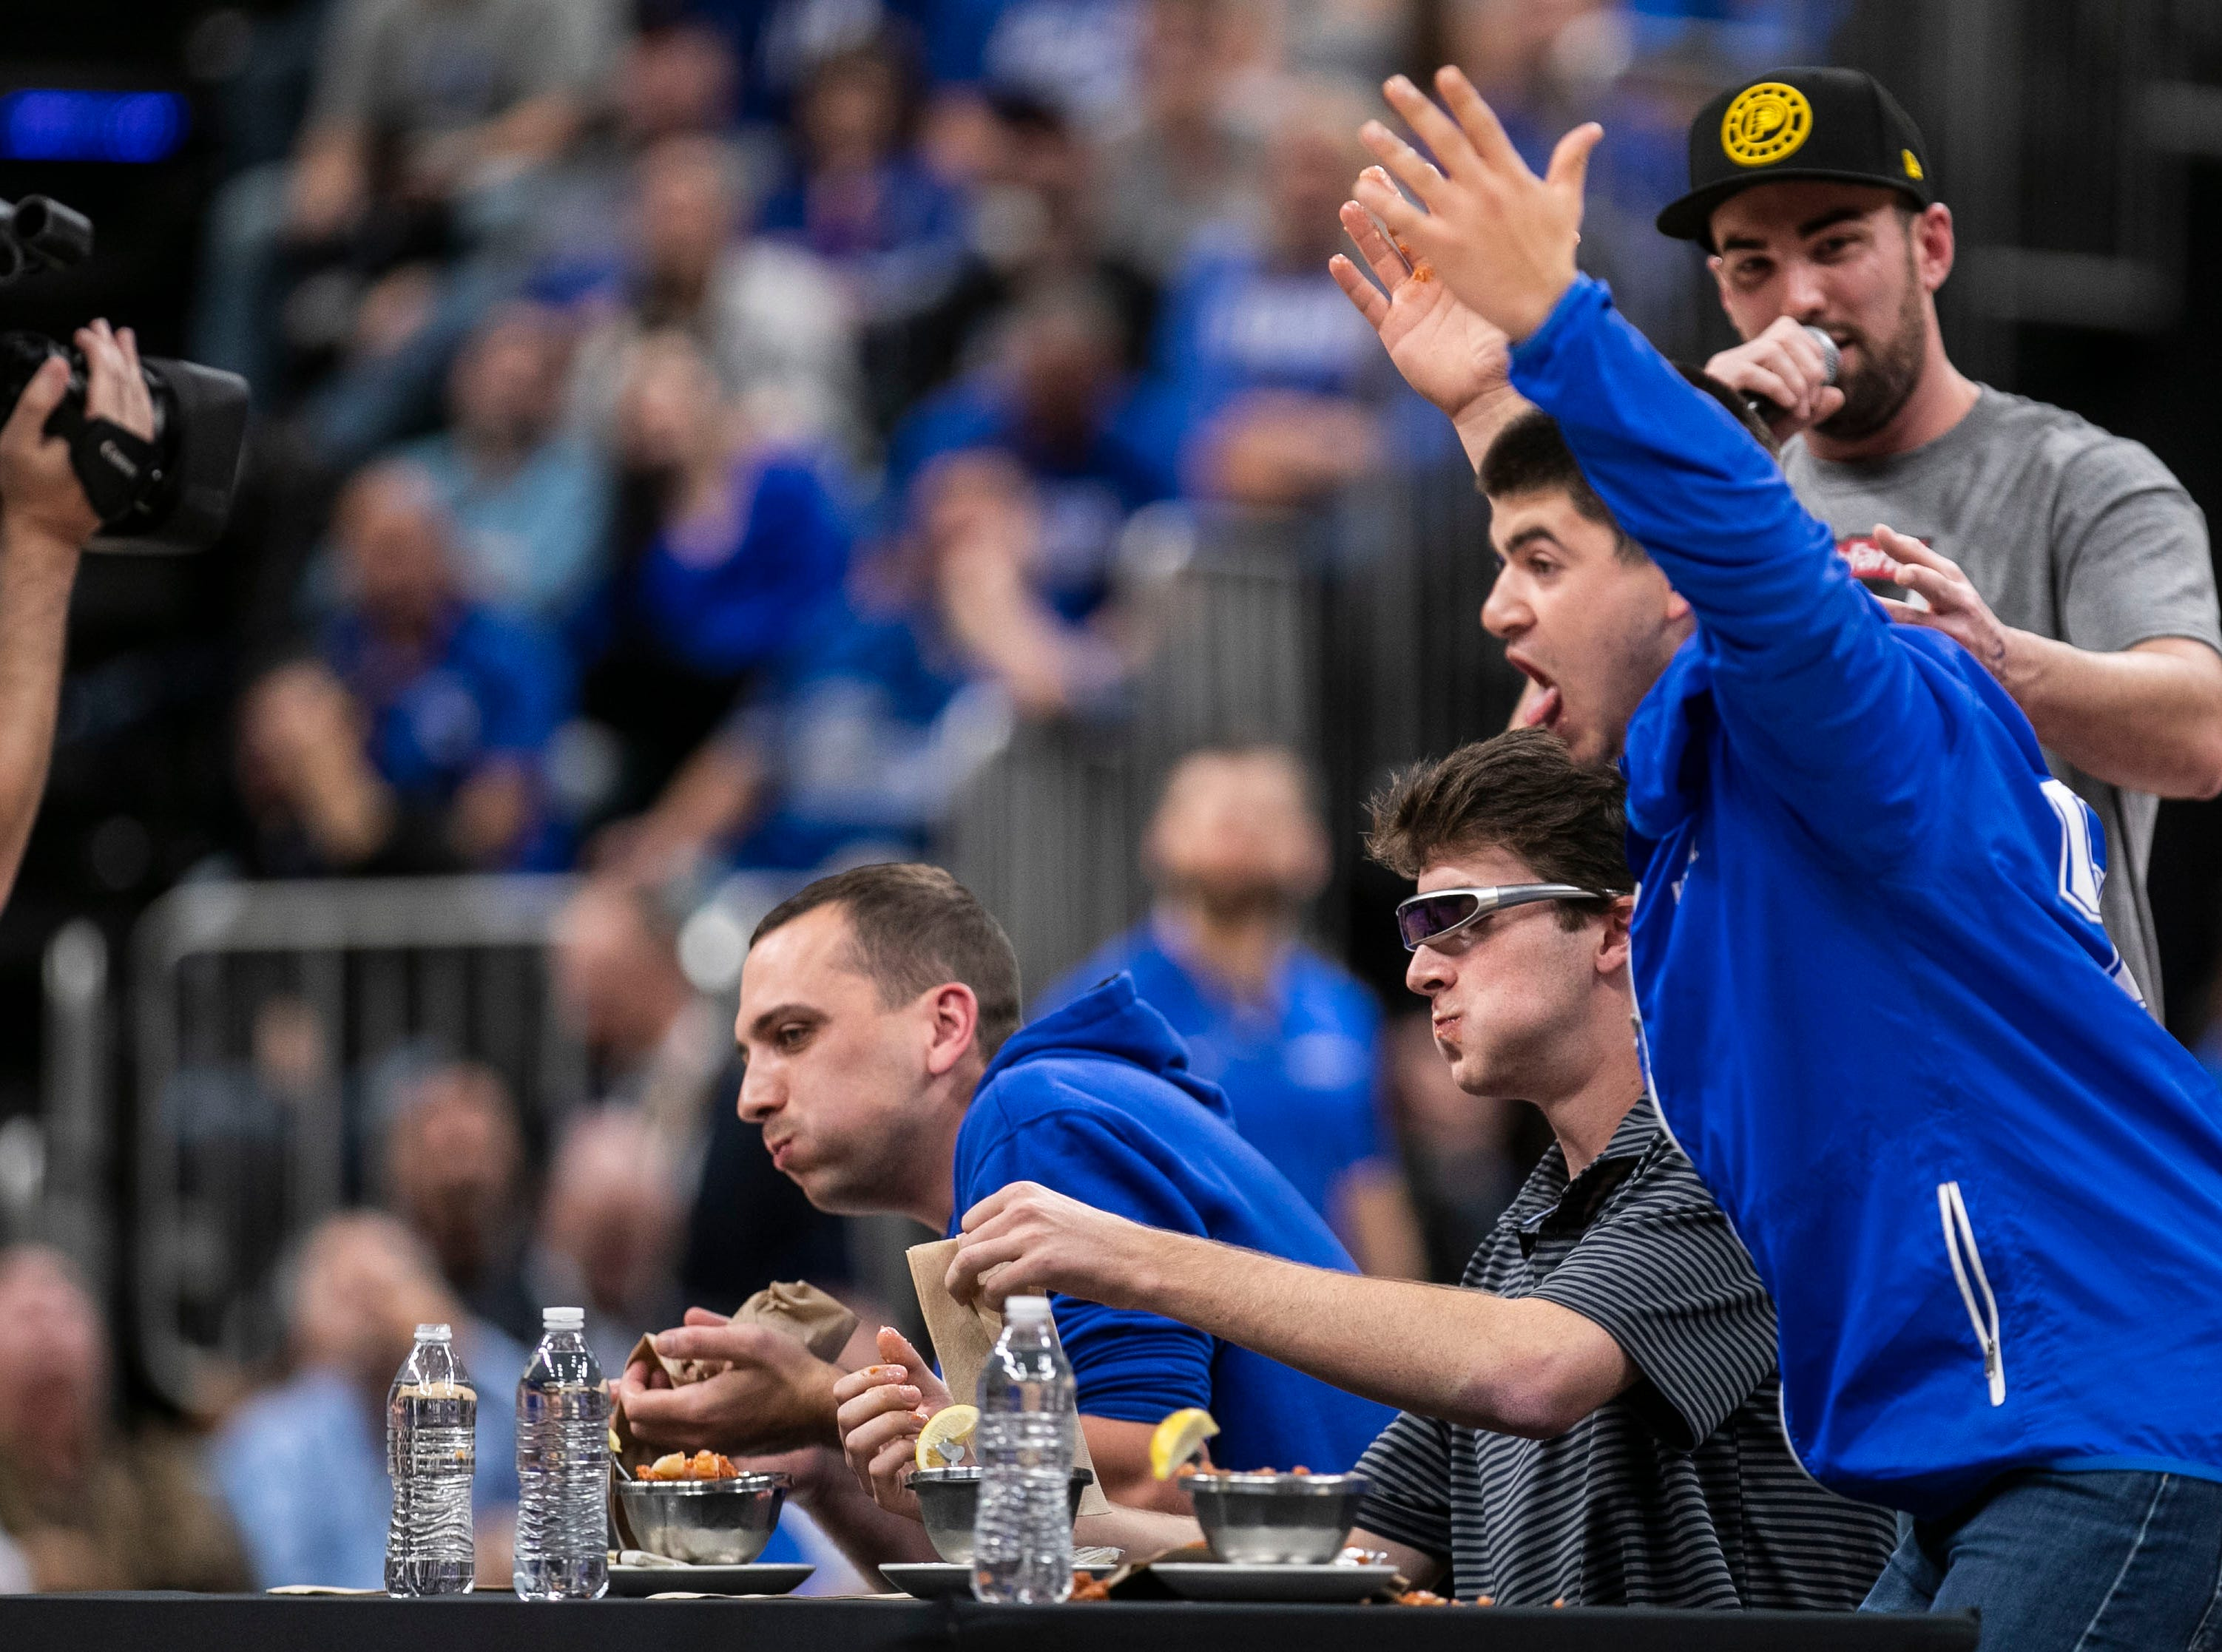 During a timeout, a shrimp eating contest was conducted between two UK fans and a Duke fan at the Champions Classic Nov. 6, 2018. St. Elmo's spicy cocktail sauce was added to the shrimp as part of the challenge.